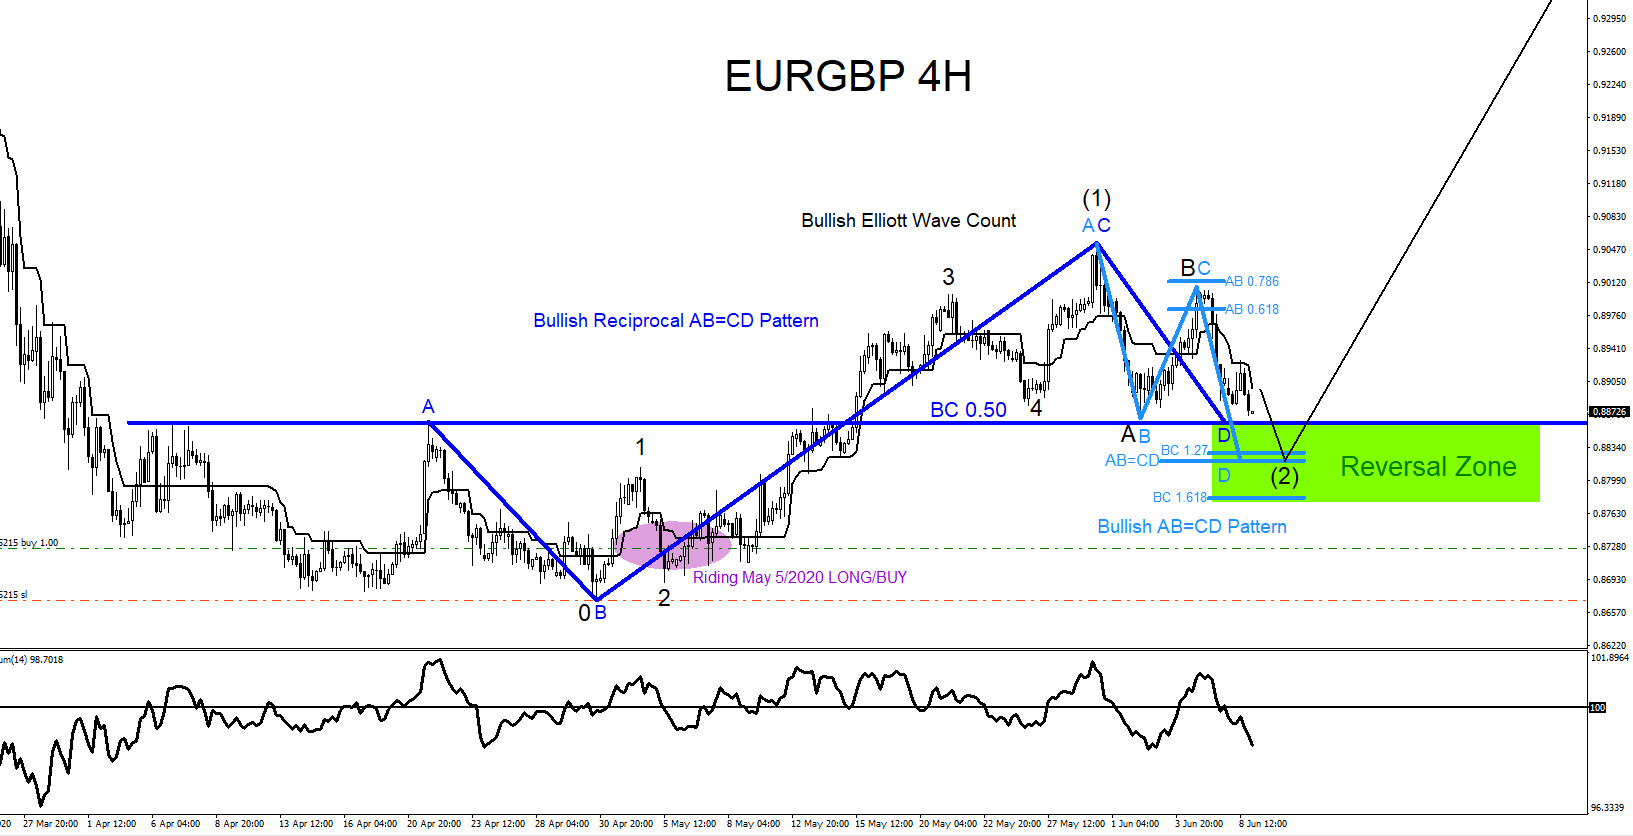 EURGBP : Watch For Possible Buying Opportunities